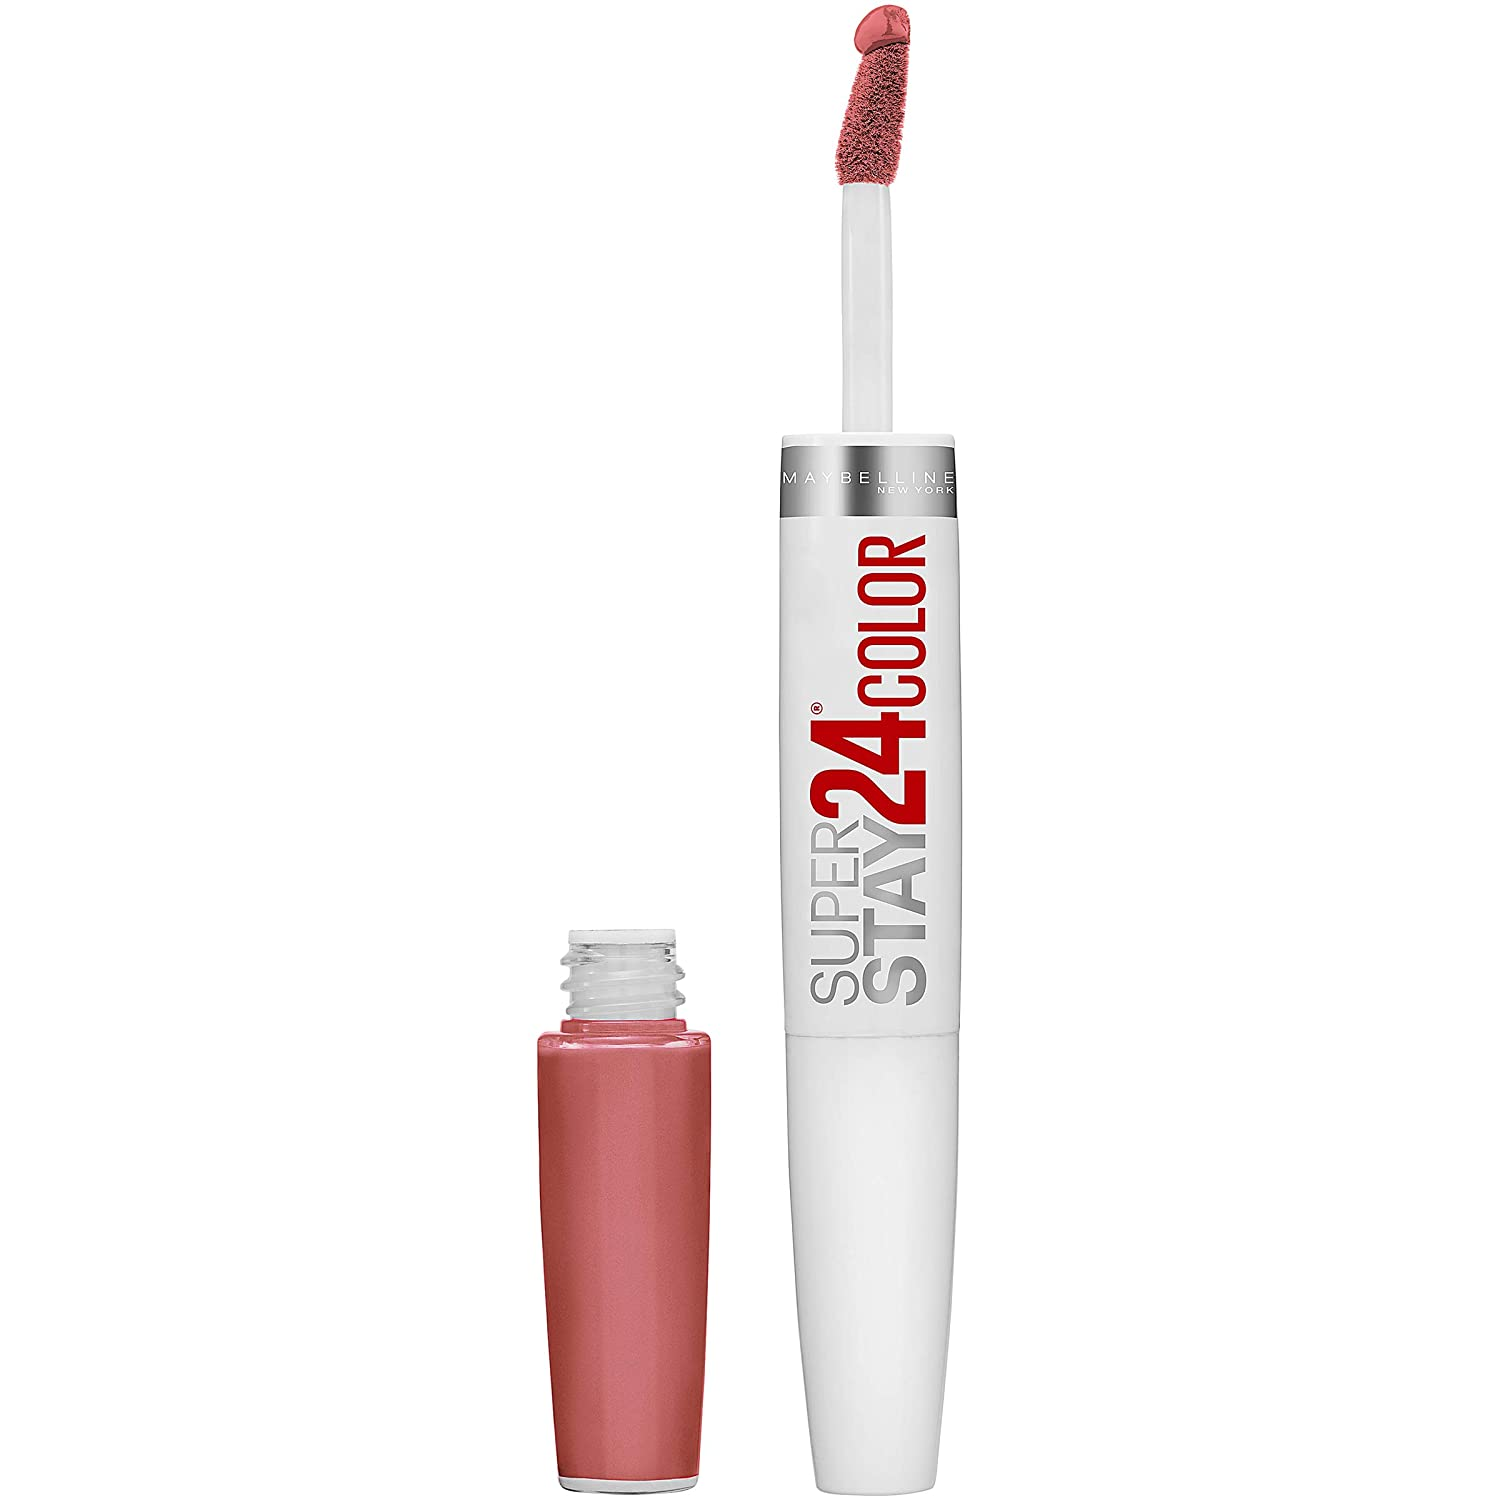 Maybelline New York Superstay 24 2-step liquid lipstick makeup, Frosted Mauve